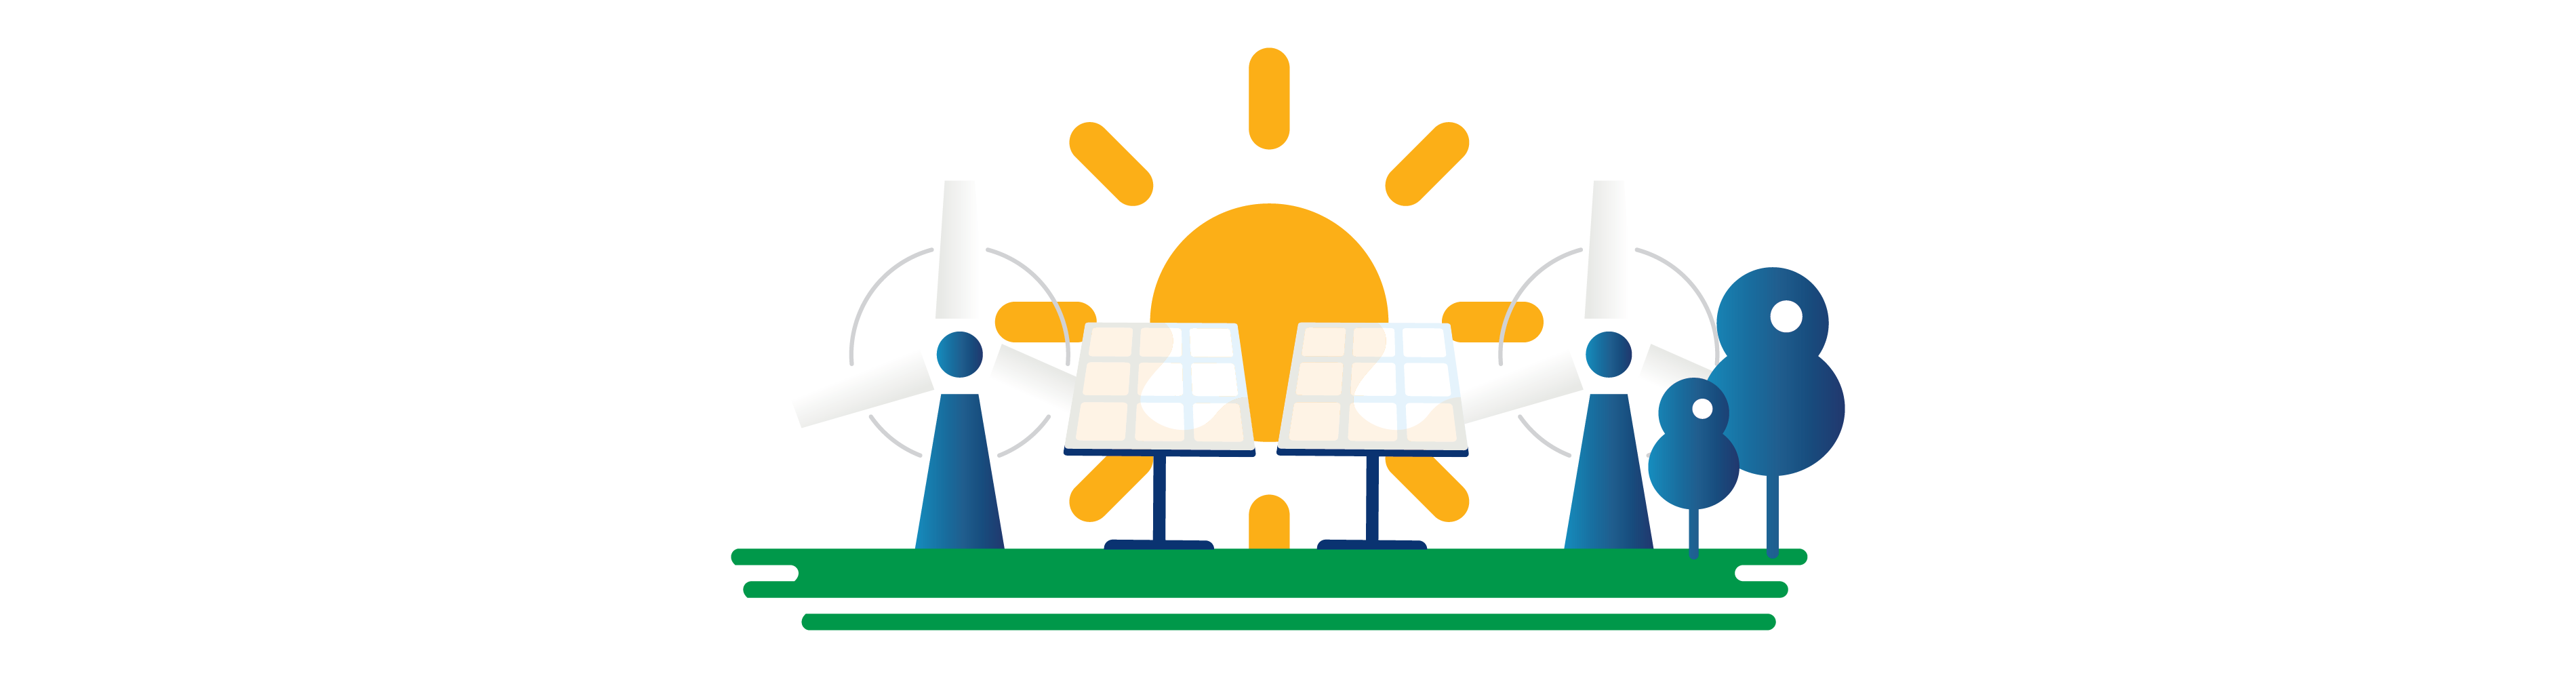 Solar-Panels-Wind-Turbine-Illustration.png